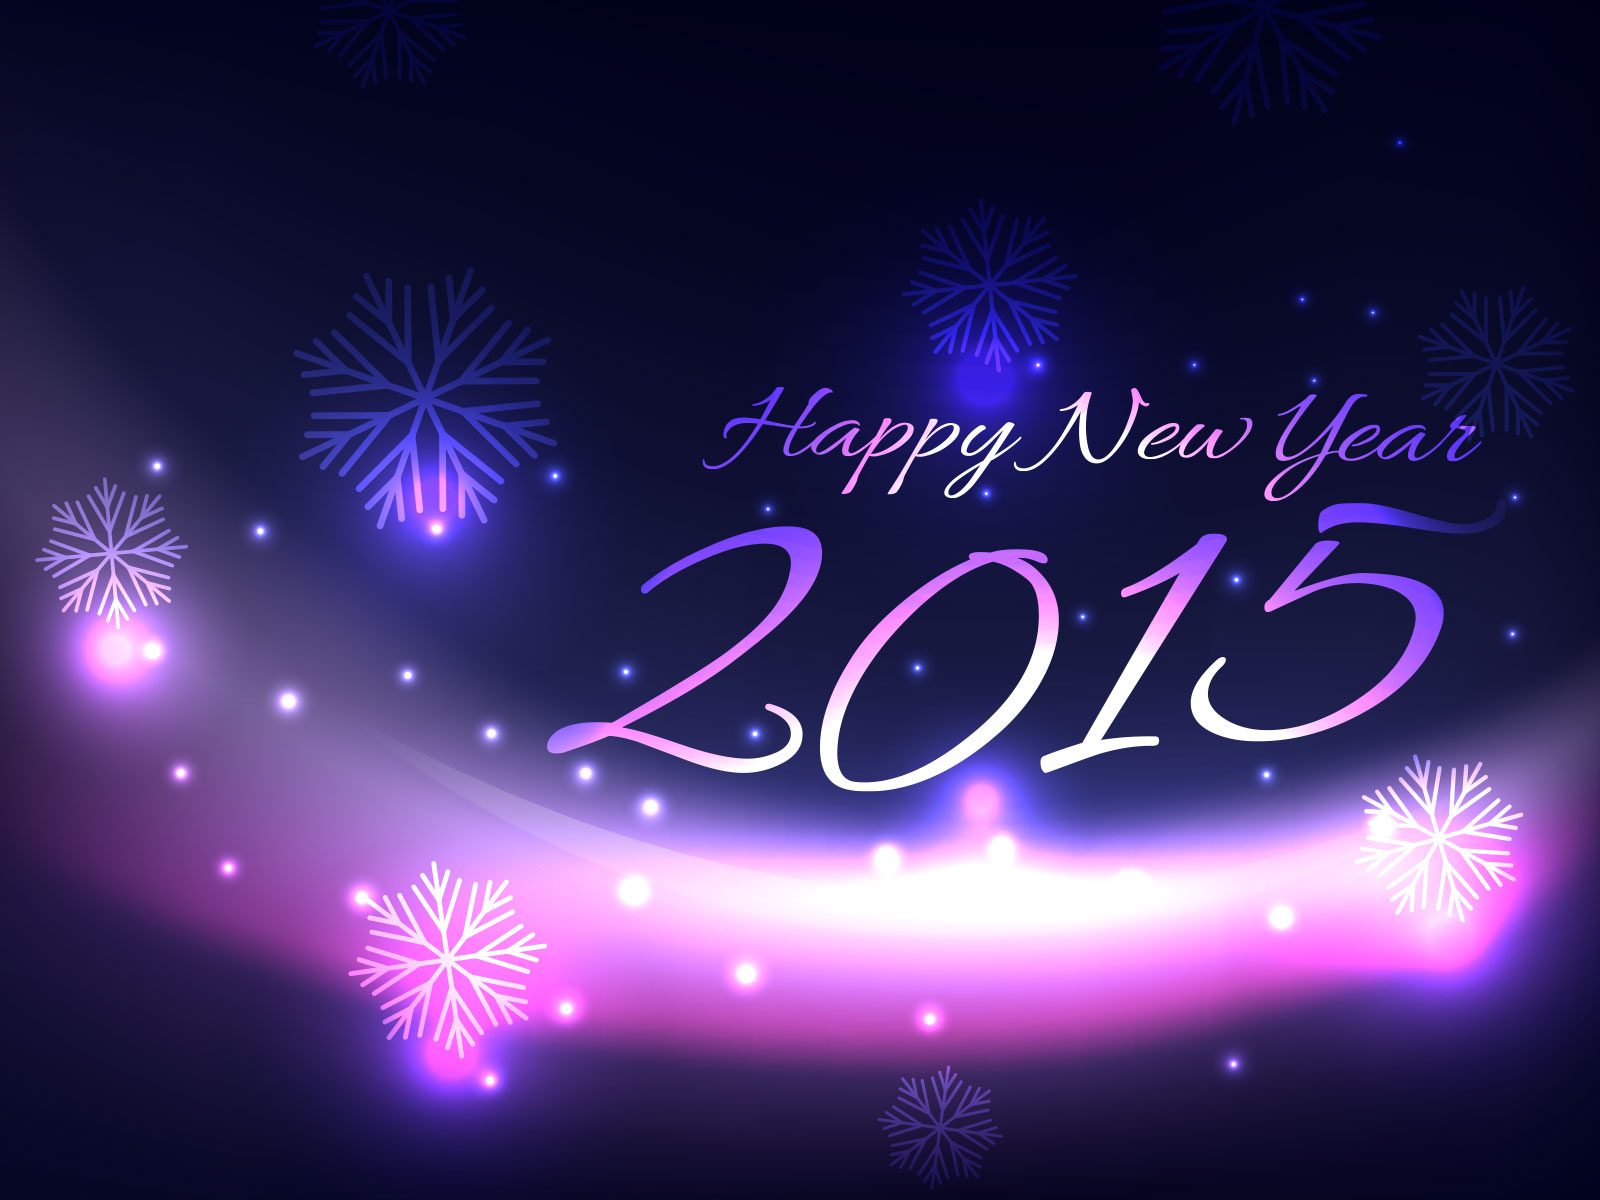 Wonderful Wallpaper Name Prashanth - Happy_New_Year_2015_HD_Wallpaper  Photograph_113615.jpg